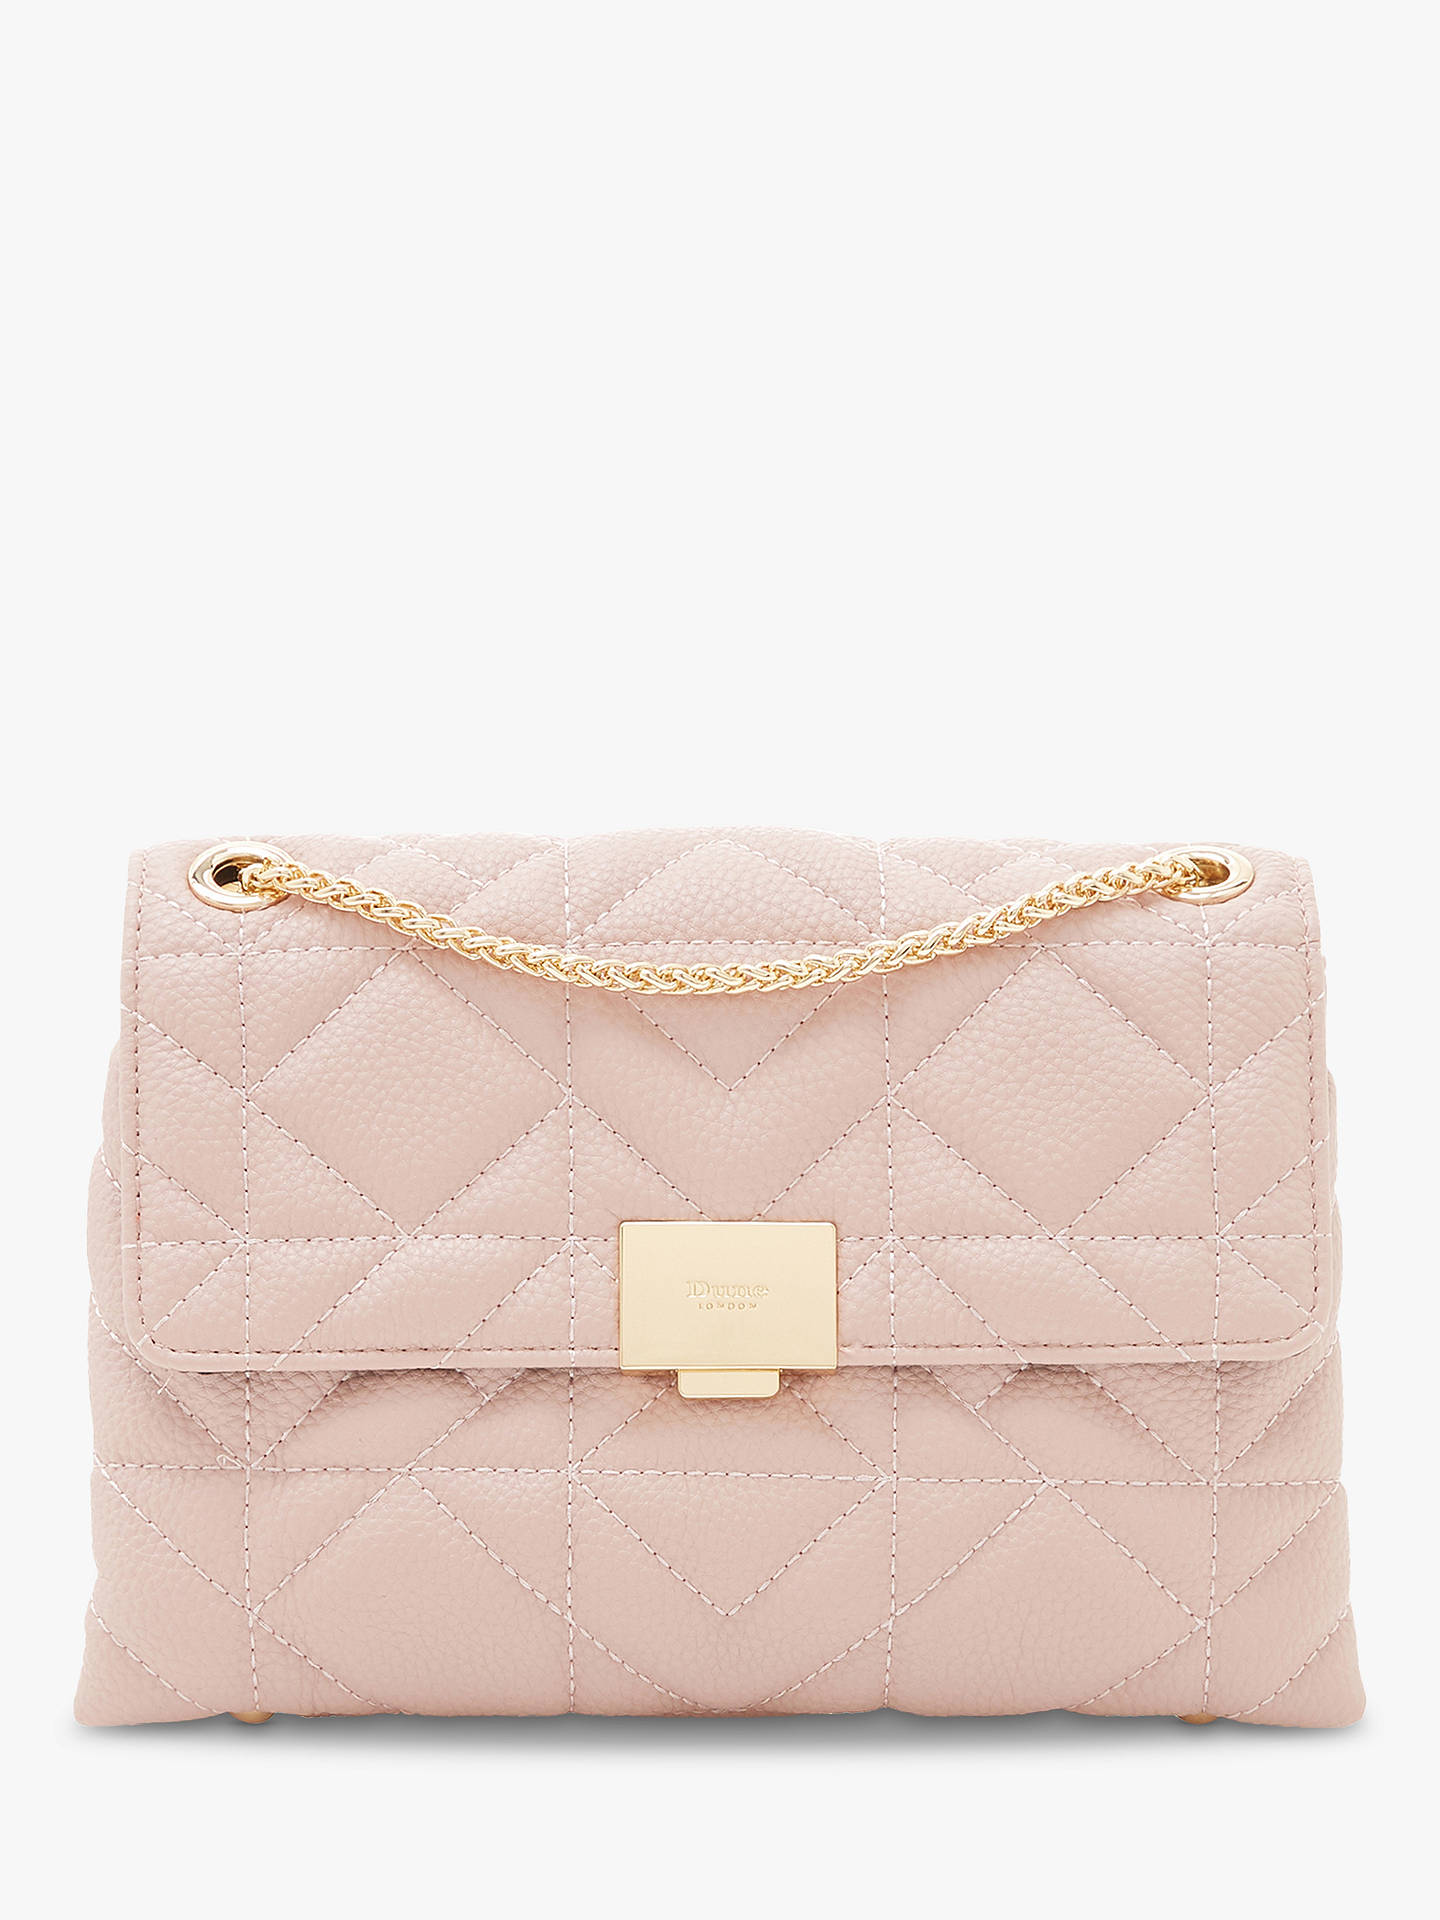 0aa7c0ceb0 Buy Dune Evangelina Quilted Clutch Bag, Blush Online at johnlewis.com ...